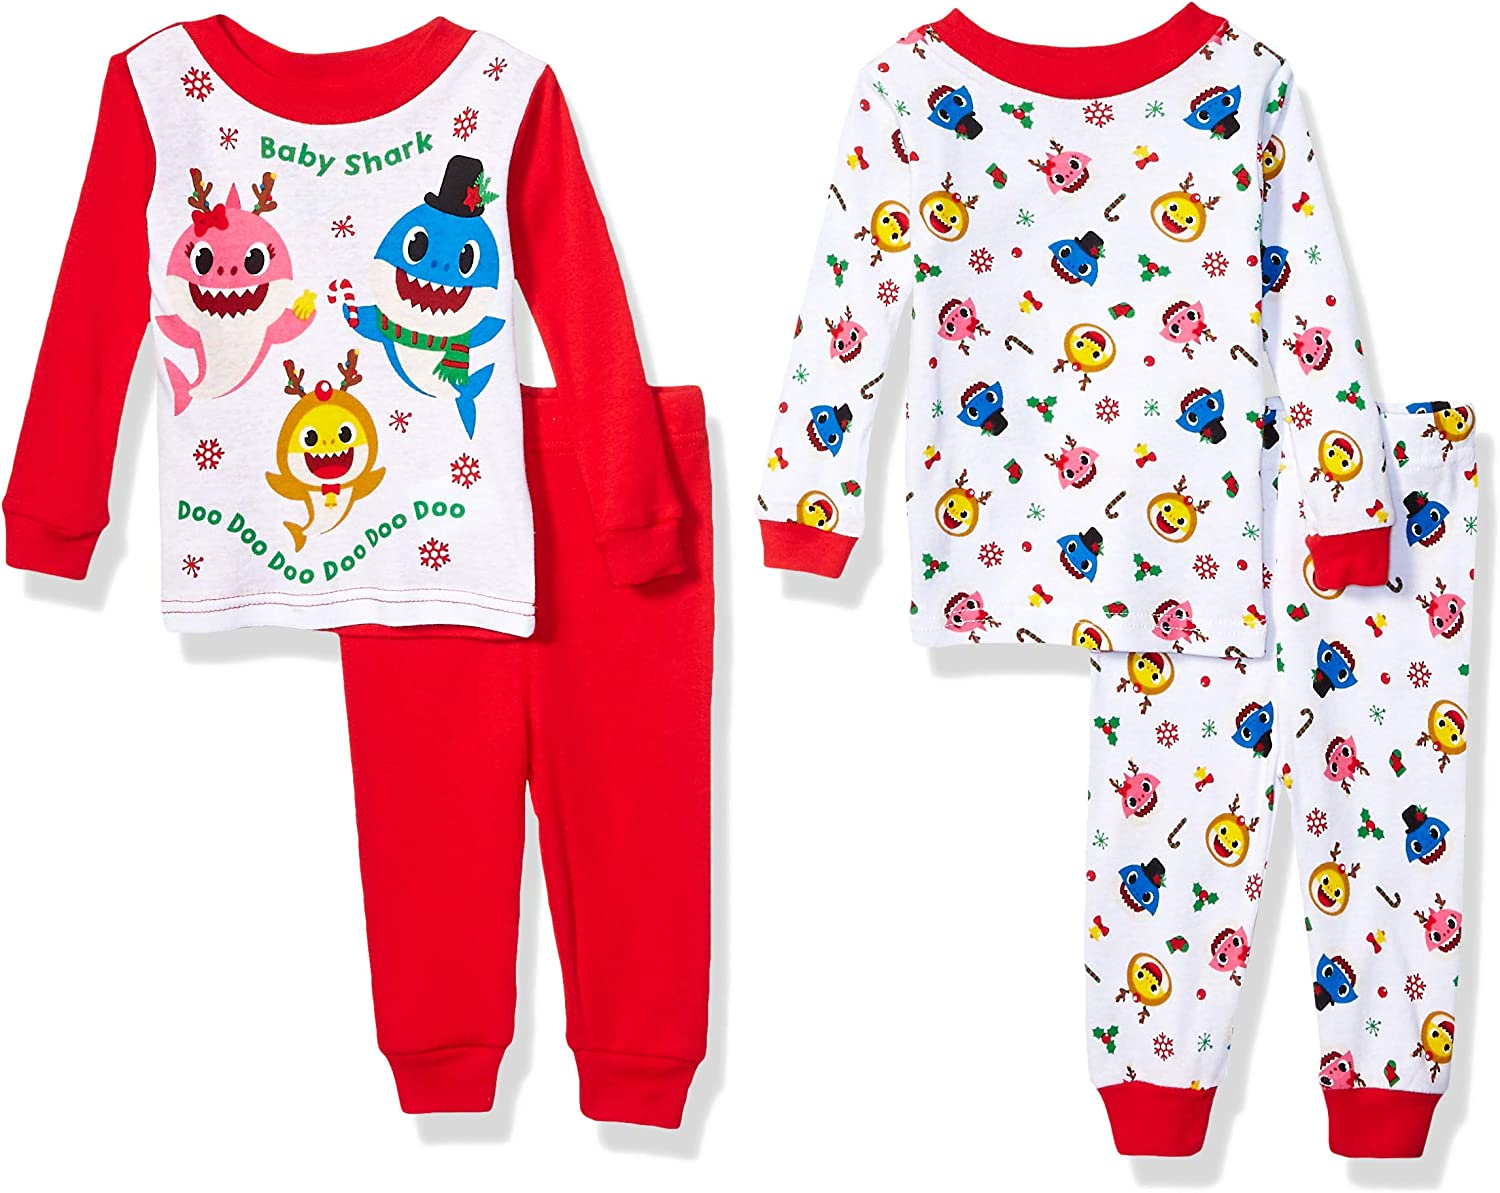 BABY SHARK CHRISTMAS 4 PIECE PAJAMAS SIZE 2T 3T 4T 5T NEW